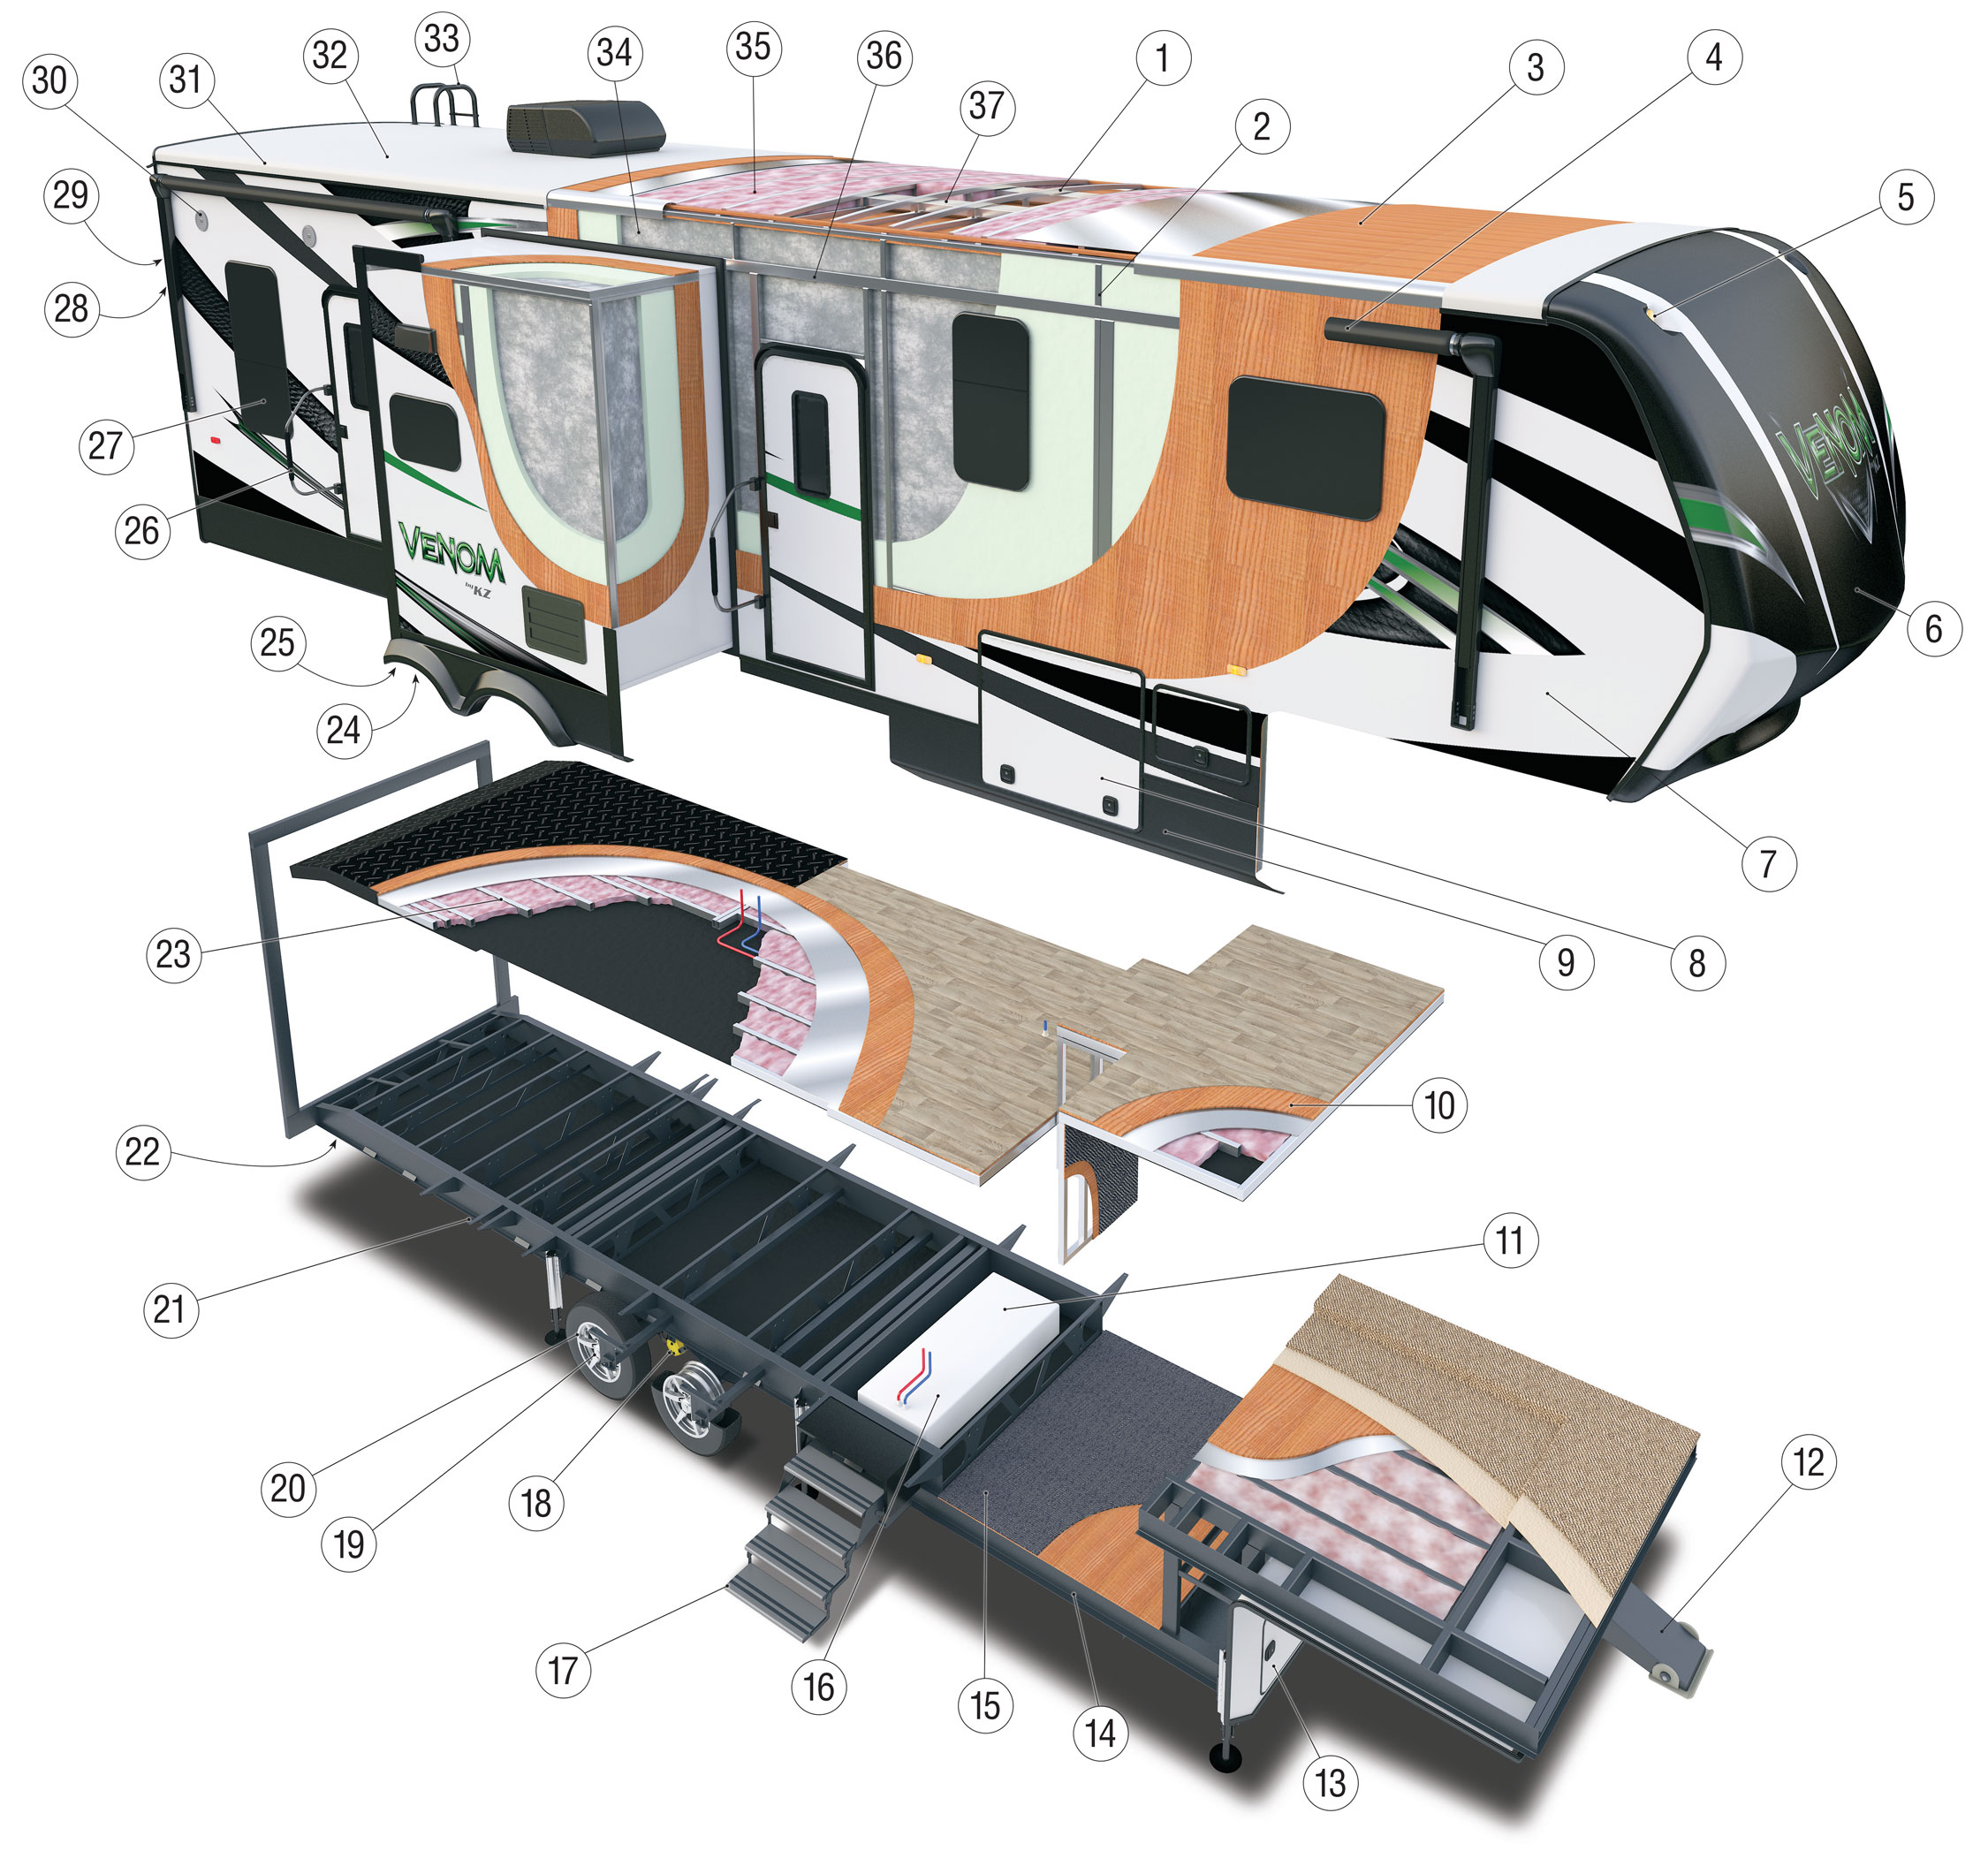 2017 Venom Luxury Fifth Wheel Toy Hauler Features